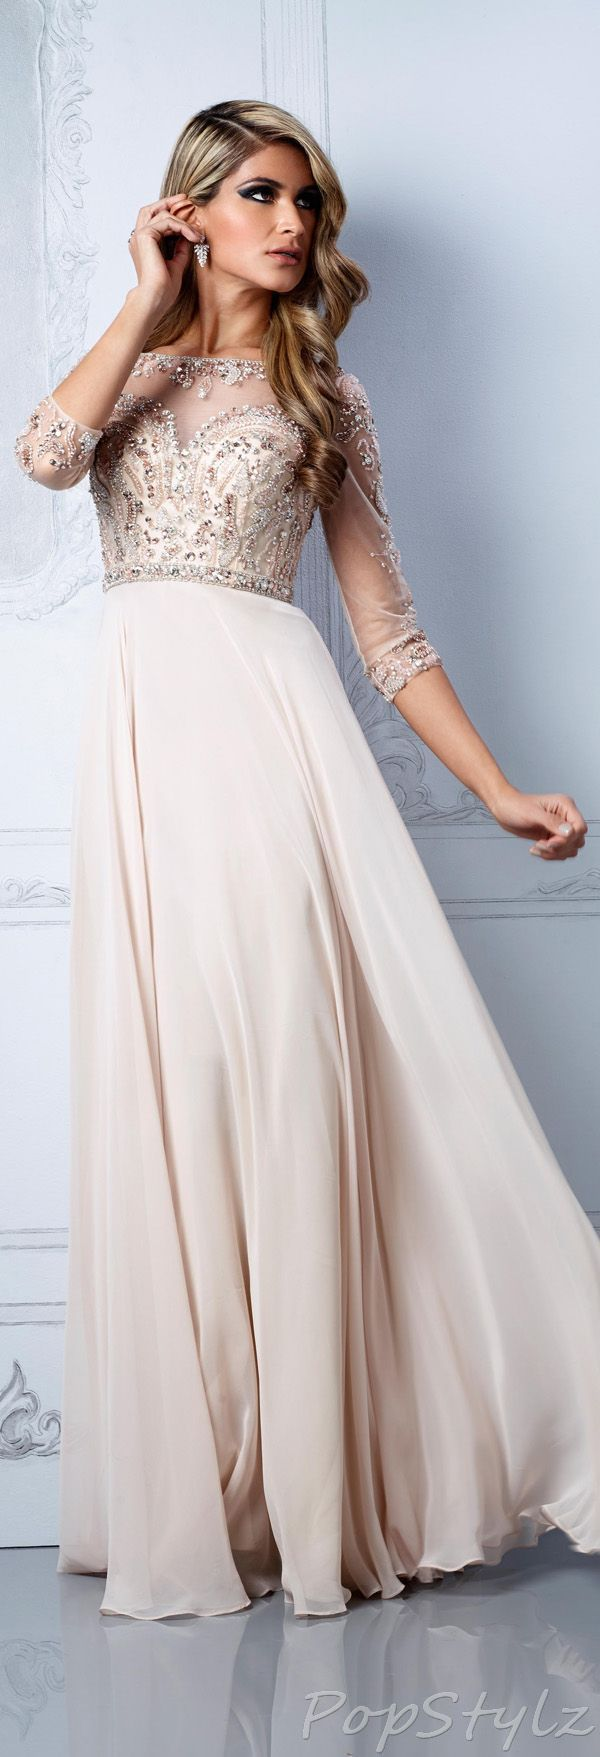 Great gatsby themed wedding dress   best Style Me Pretty images on Pinterest  My style Blouses and